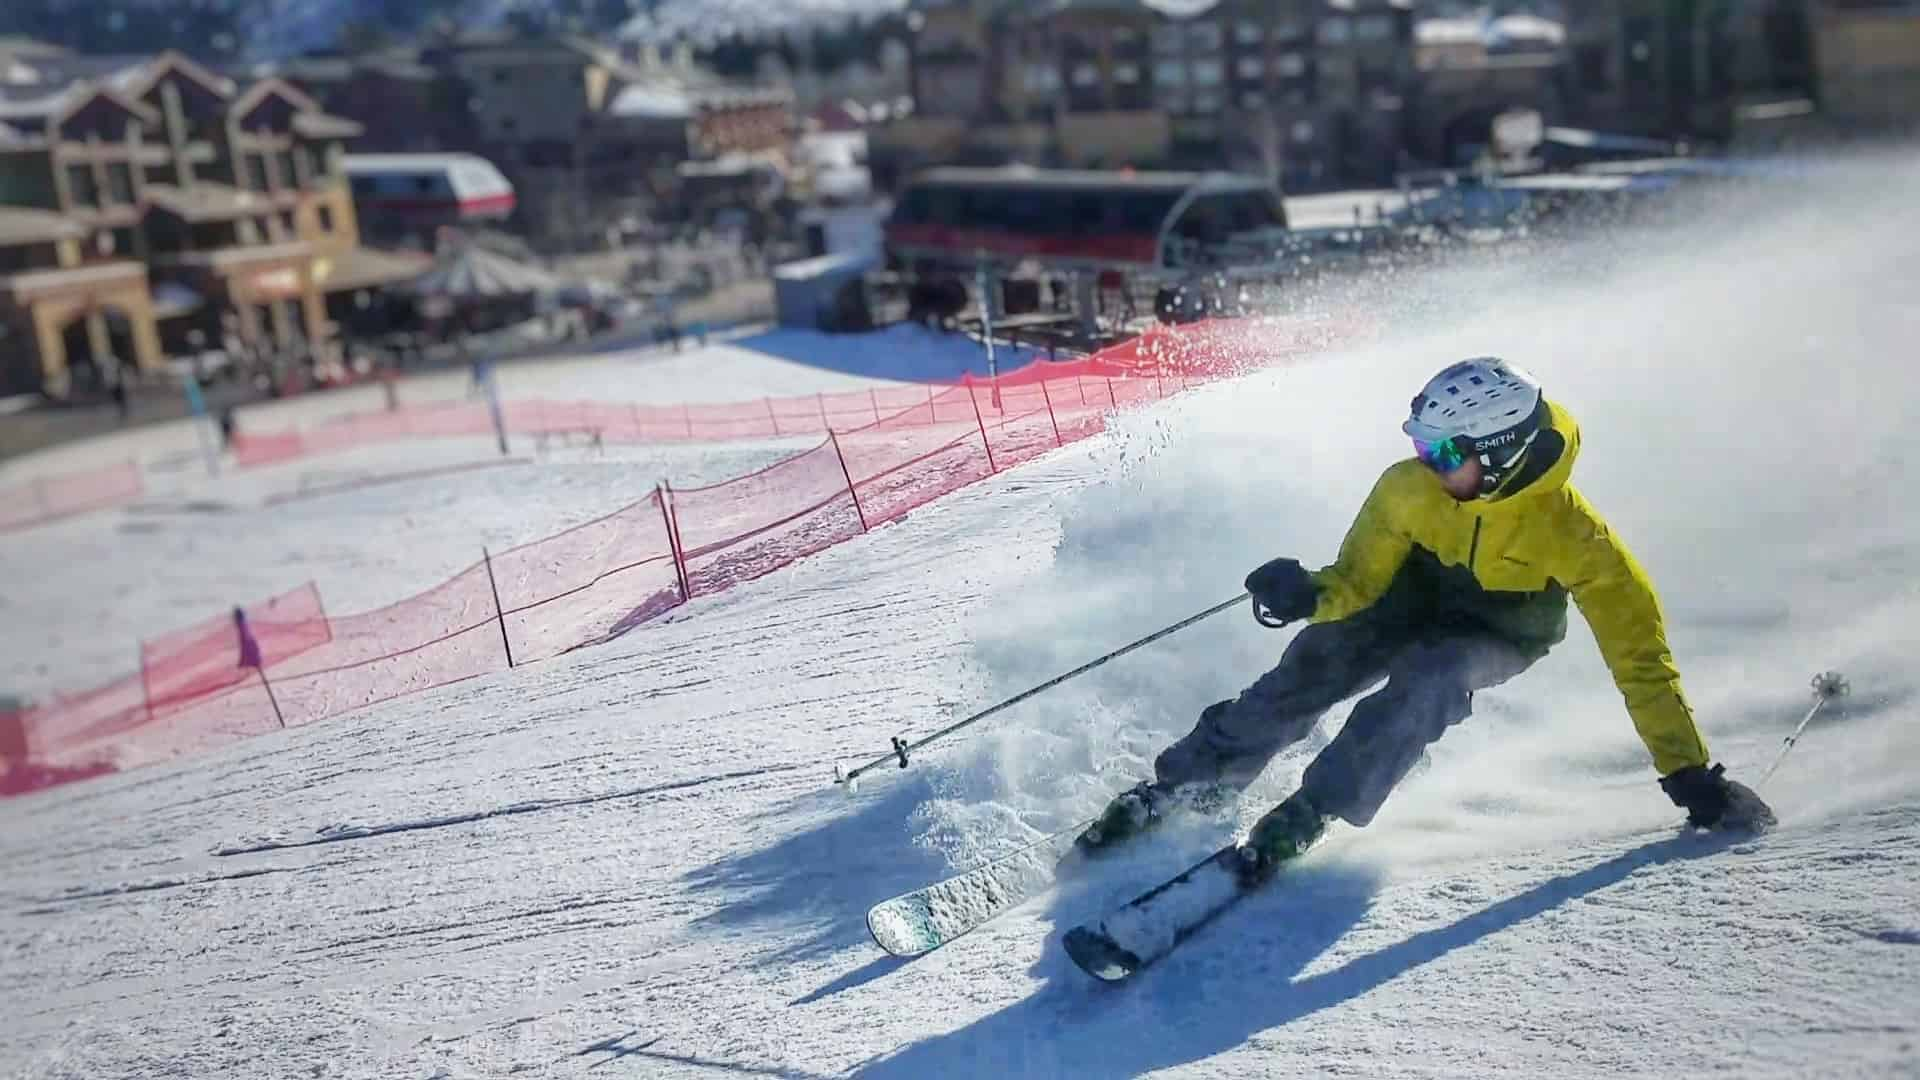 Park City Ski Trip 1 - How to Make the Most of Your Park City Ski Trip